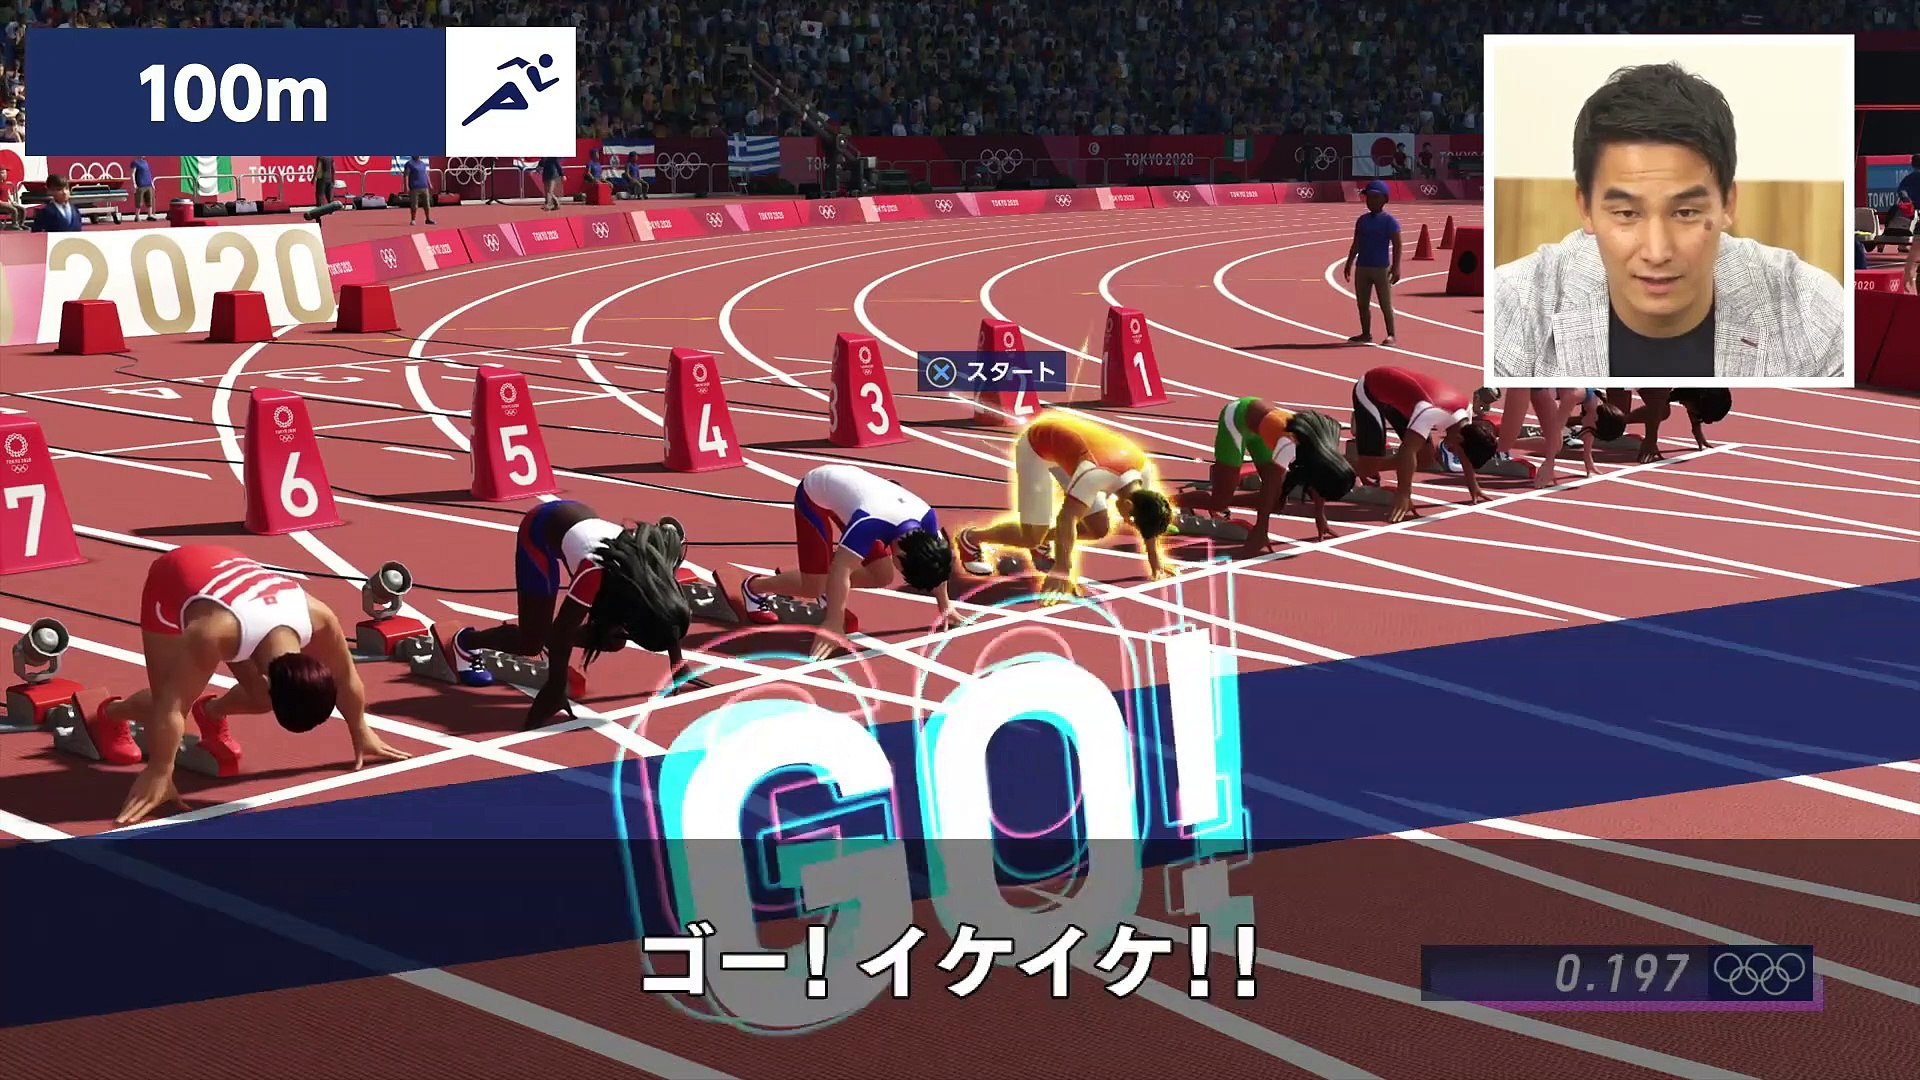 Tokyo 2020 Olympics: The Official Video Game - Atletismo